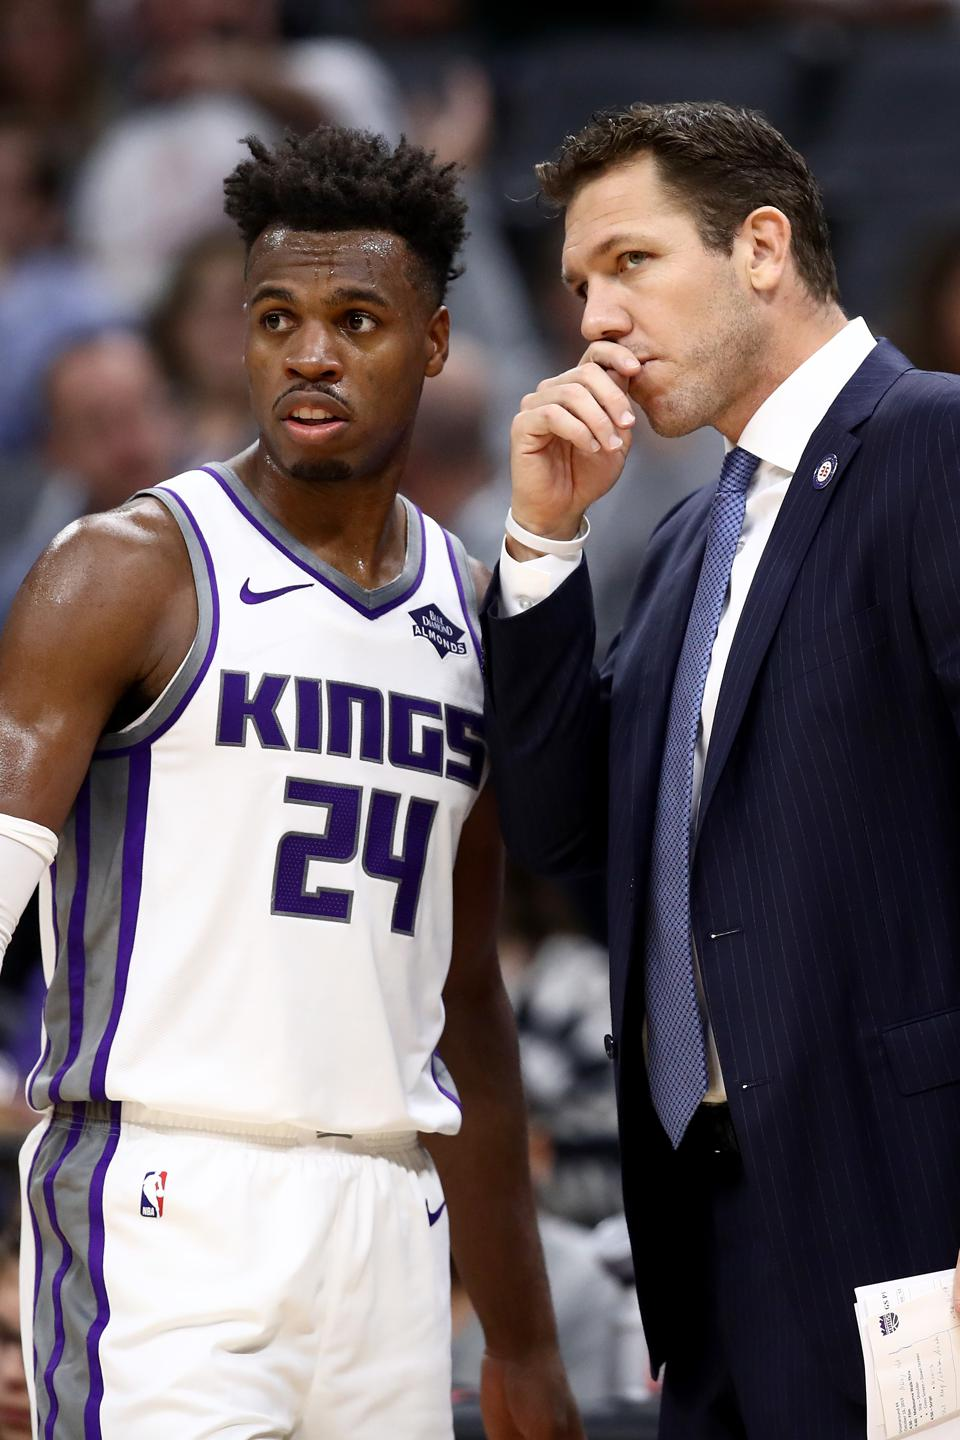 Melbourne United v Sacramento KingsSACRAMENTO, CALIFORNIA - OCTOBER 16:  Head coach Luke Walton of the Sacramento Kings talks to Buddy Hield #24 during their game against the Melbourne United at Golden 1 Center on October 16, 2019 in Sacramento, California. NOTE TO USER: User expressly acknowledges and agrees that, by downloading and or using this photograph, User is consenting to the terms and conditions of the Getty Images License Agreement. (Photo by Ezra Shaw/Getty Images)